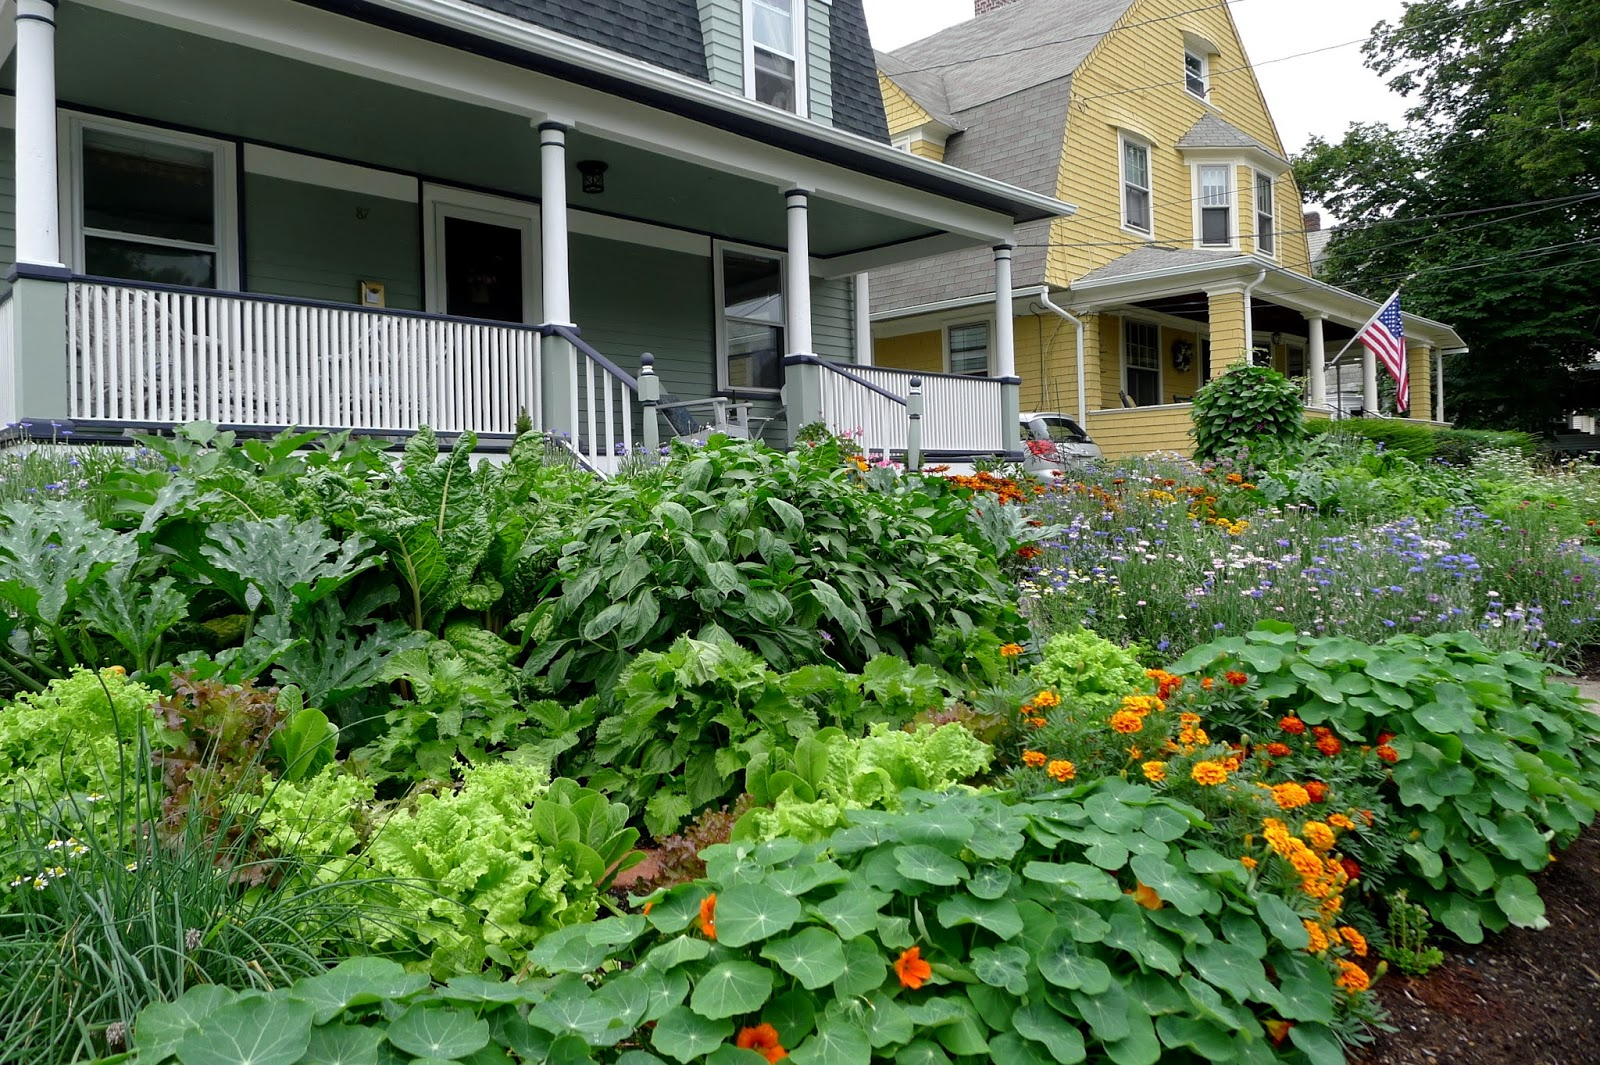 Less Noise, More Green: Edible Landscape Project